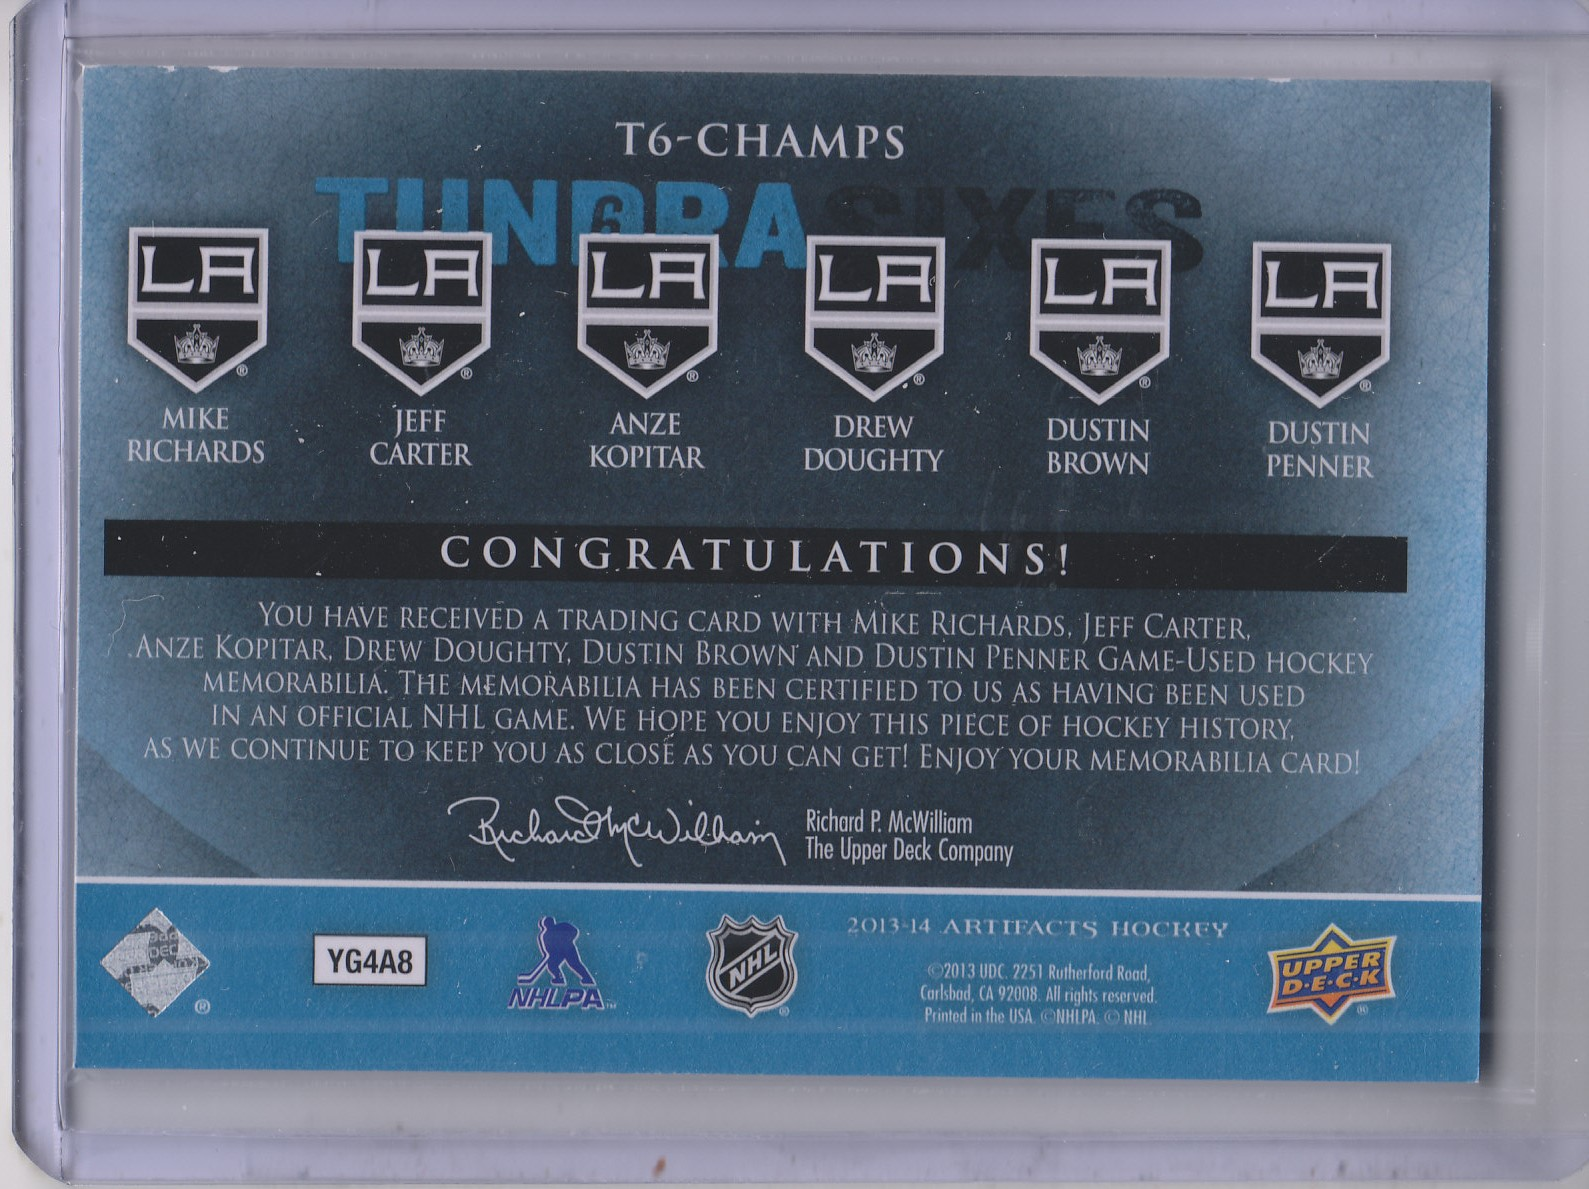 2013-14 Artifacts Tundra Sixes Jerseys Blue #T6CHAMPS Mike Richards/Jeff Carter/Anze Kopitar/Drew Doughty/Dustin Penner/Dustin Brown back image